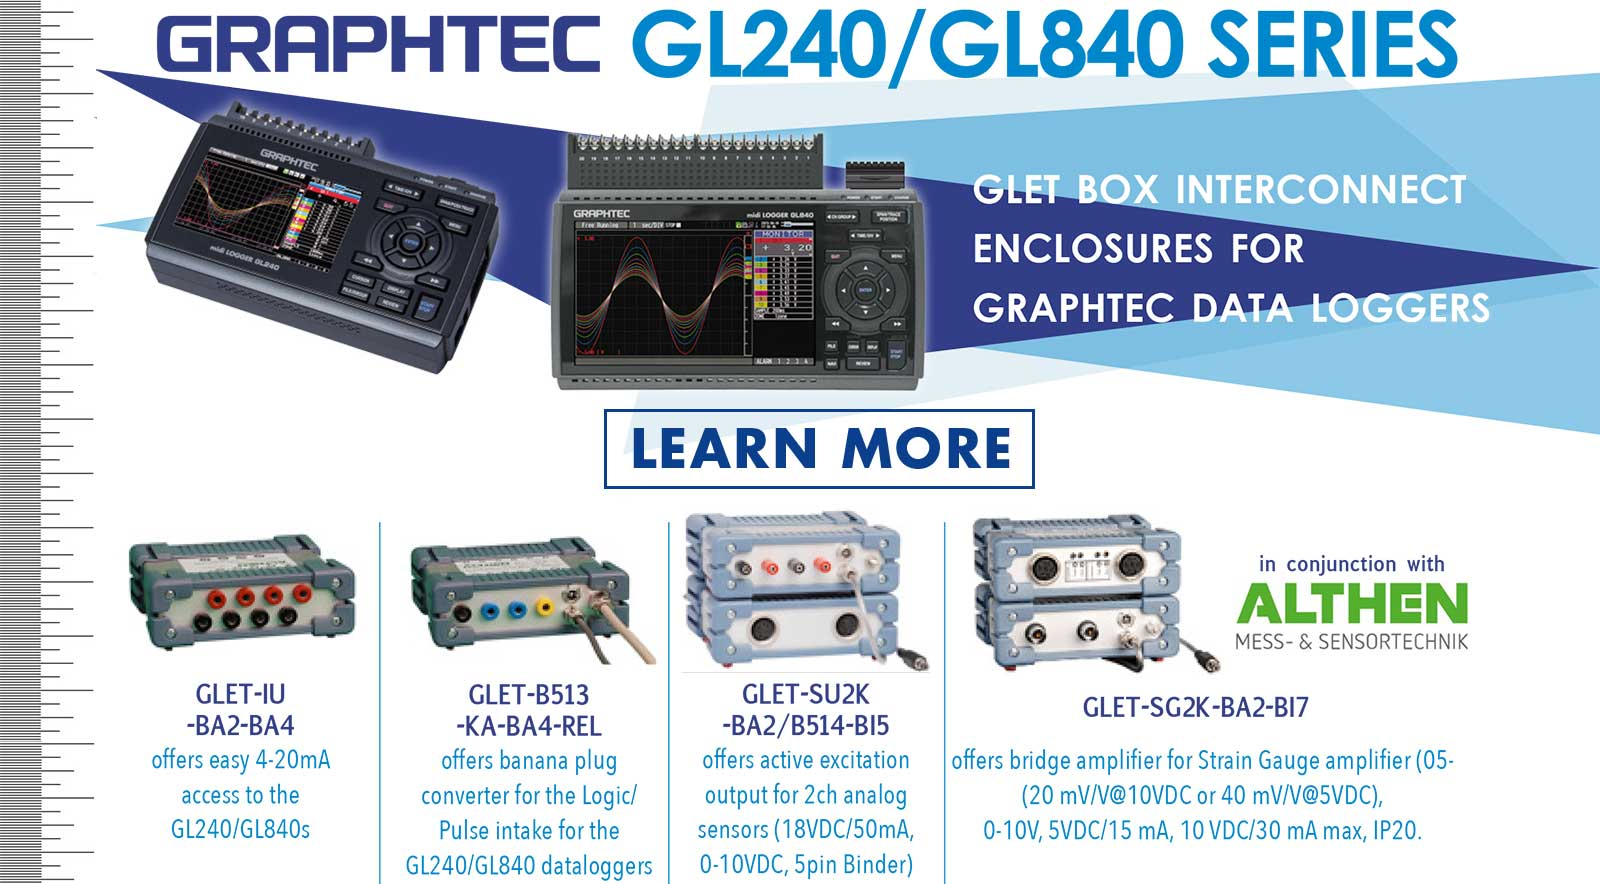 GRAPHTEC MIDI DATA LOGGER GL840 GL240 GLET BOX INTERCONNECT ENCLOSURES FOR GRAPHTEC DATA LOGGERS